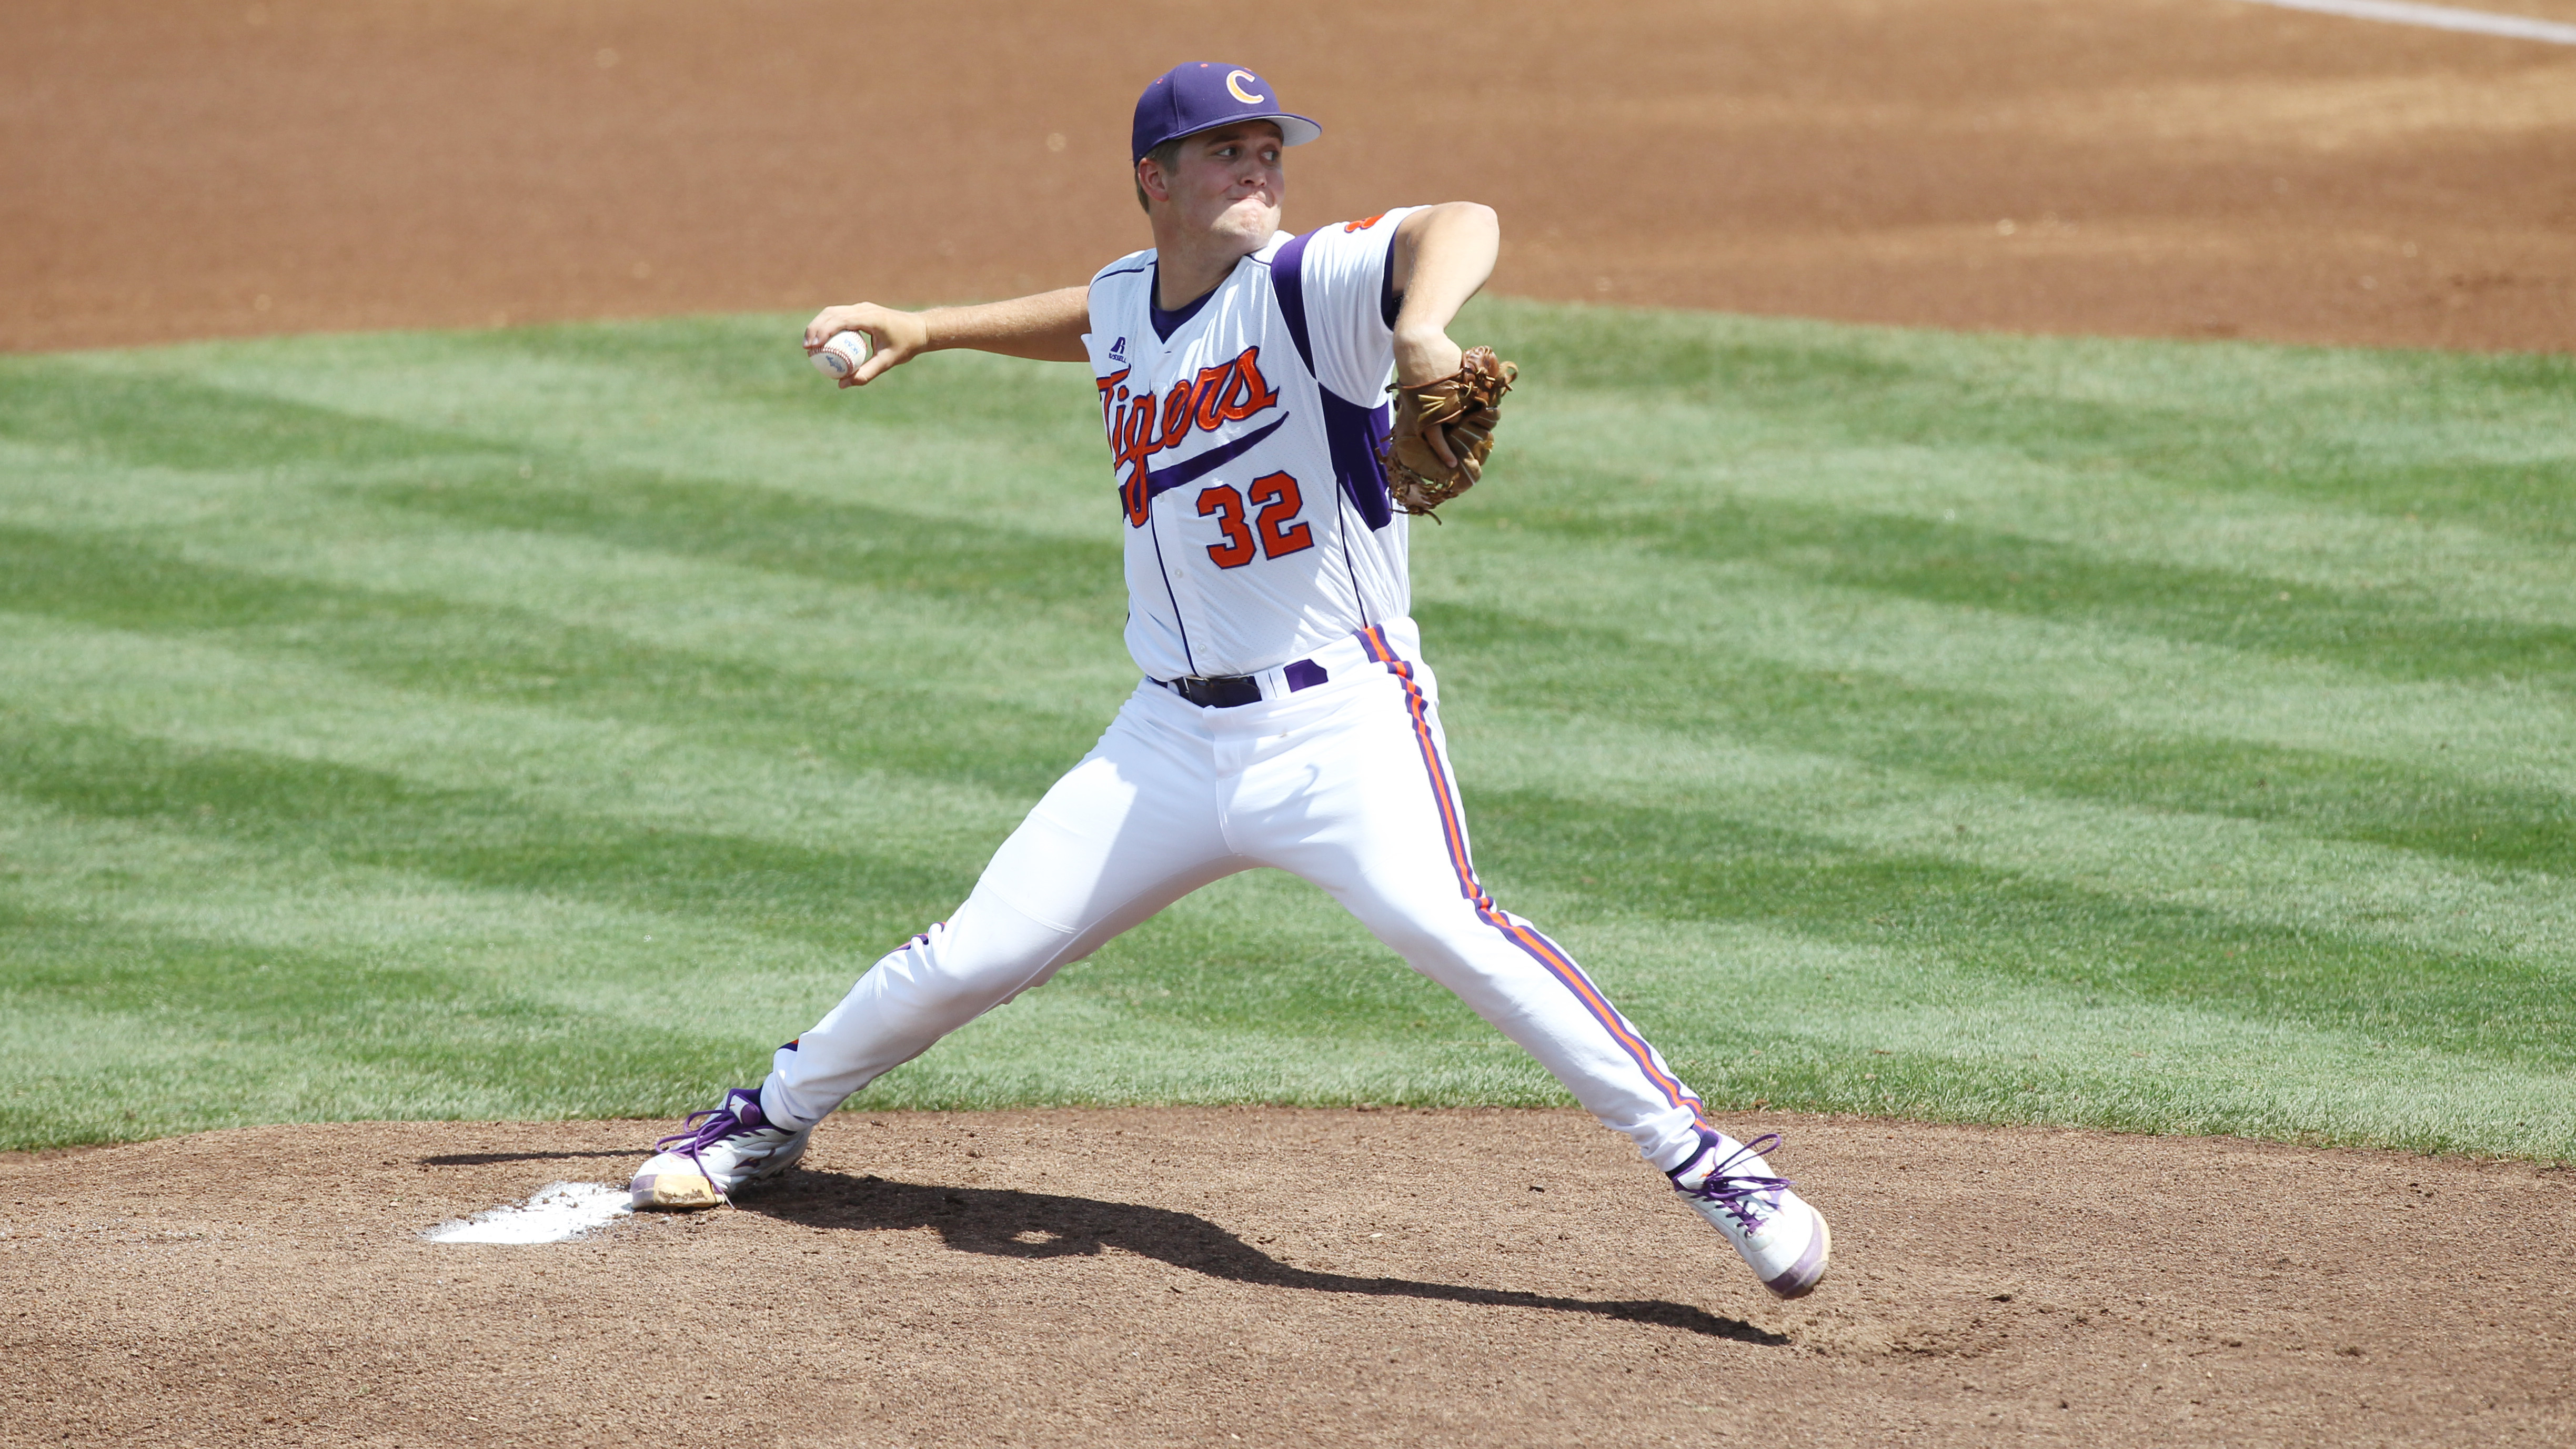 Schmidt's Gritty Outing Can't Preserve Tigers' Title Hopes